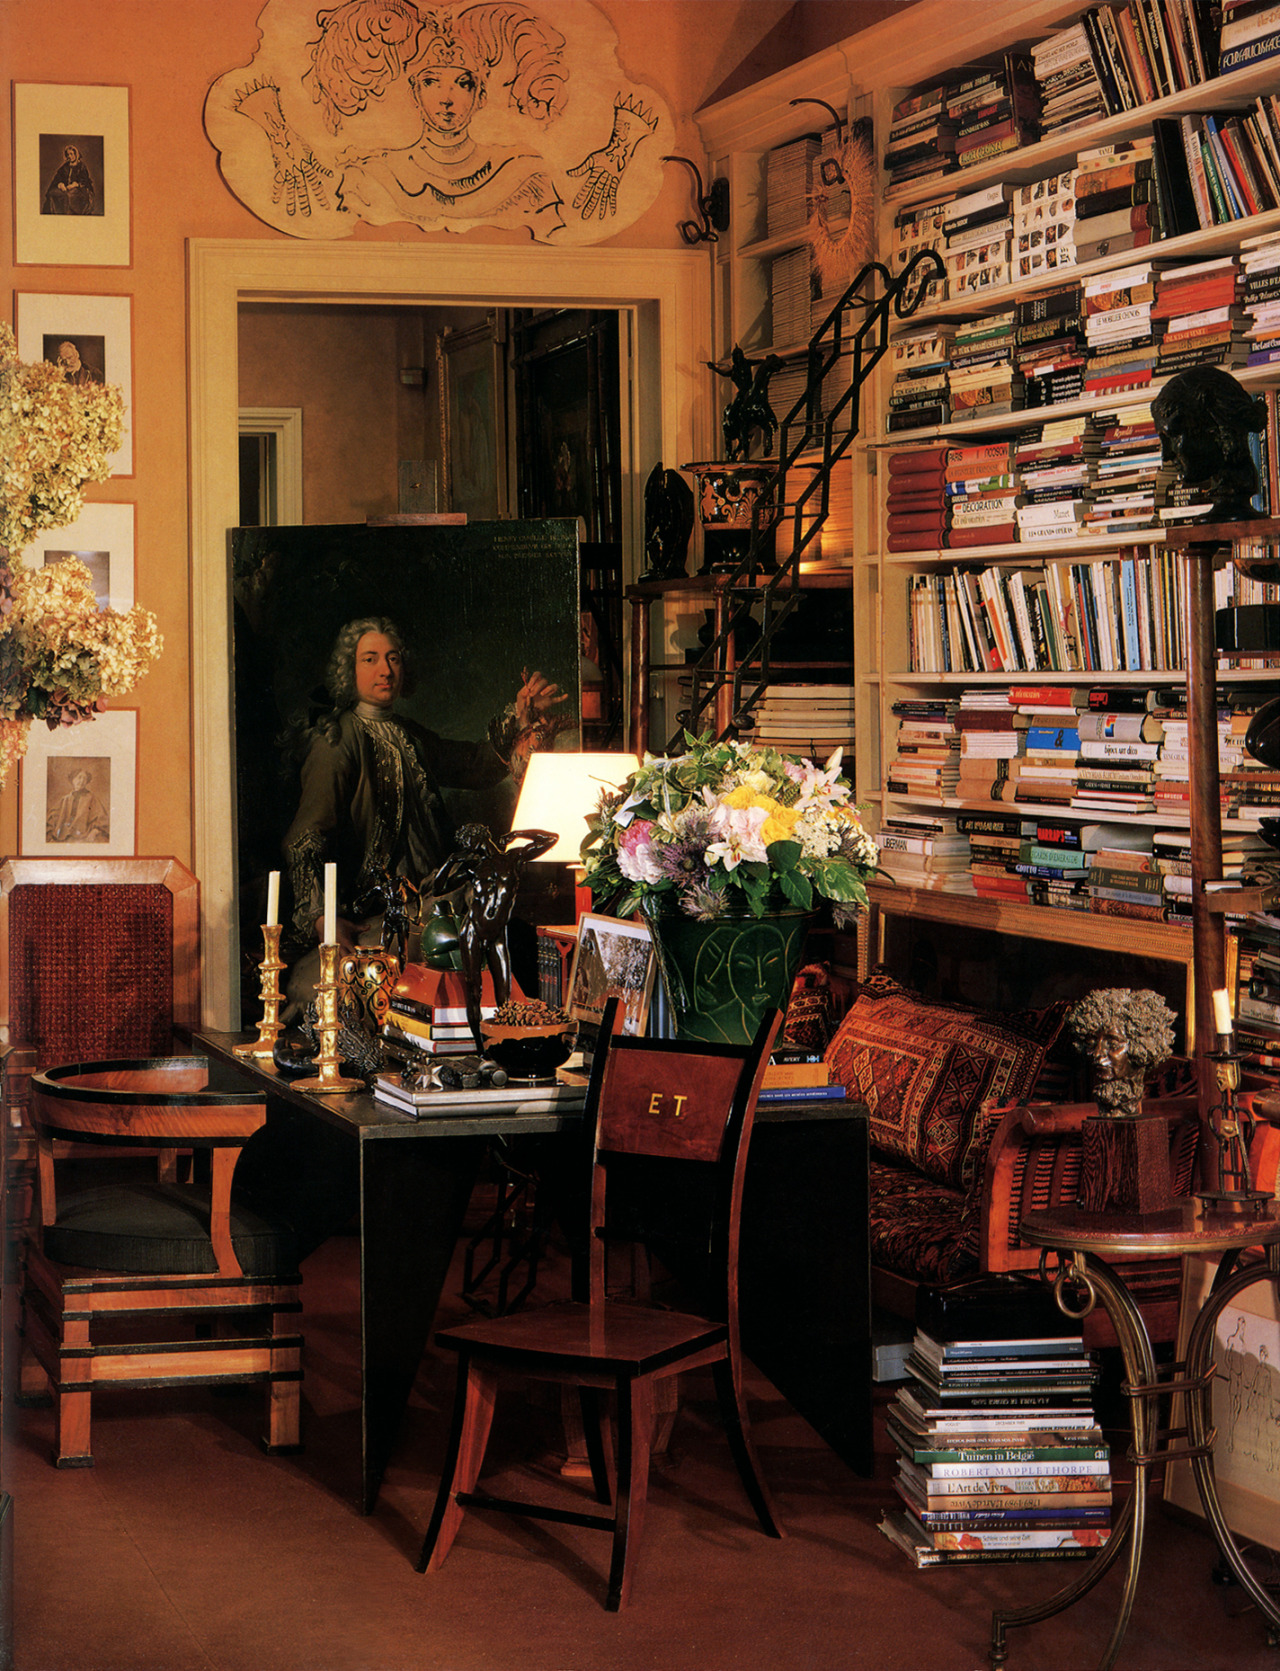 patrickhumphreys:  Jacques Grange's Paris apartment.  [V]iew of the library that leads through from the living room to the dining room. The portrait is 18th century, the drawing over the door is by Bérard, the bronzes are from the 50s and the chair in the foreground was designed by Emilio Terry in the mid-thirties. —Lisa Lovatt-Smith, 1994  Photo by Eric Adjani.